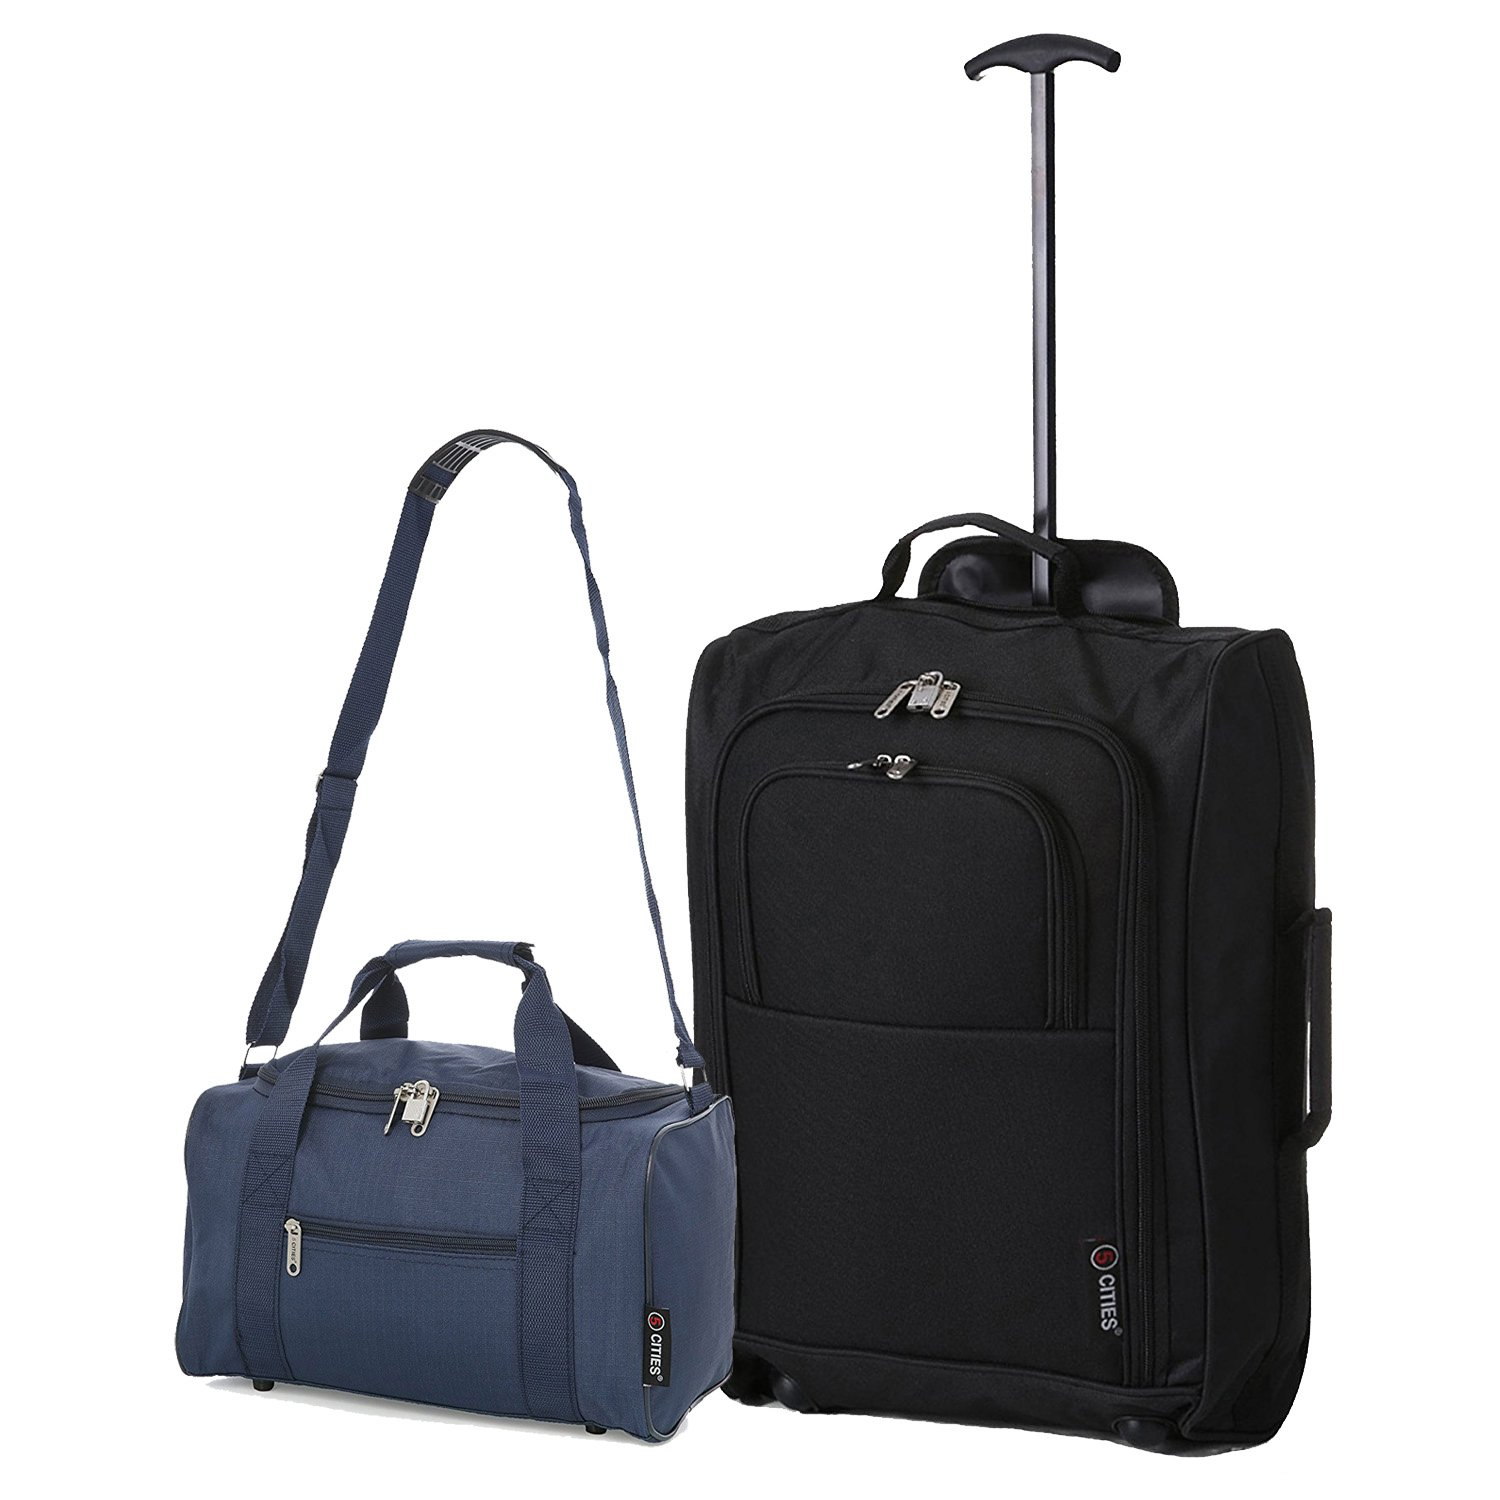 5 Cities Ryanair Cabin Approved Main and Second Set Carry On BothHand Luggage, 54 cm, 42 L, Black TB023-830Blk+Hold601BlkV1